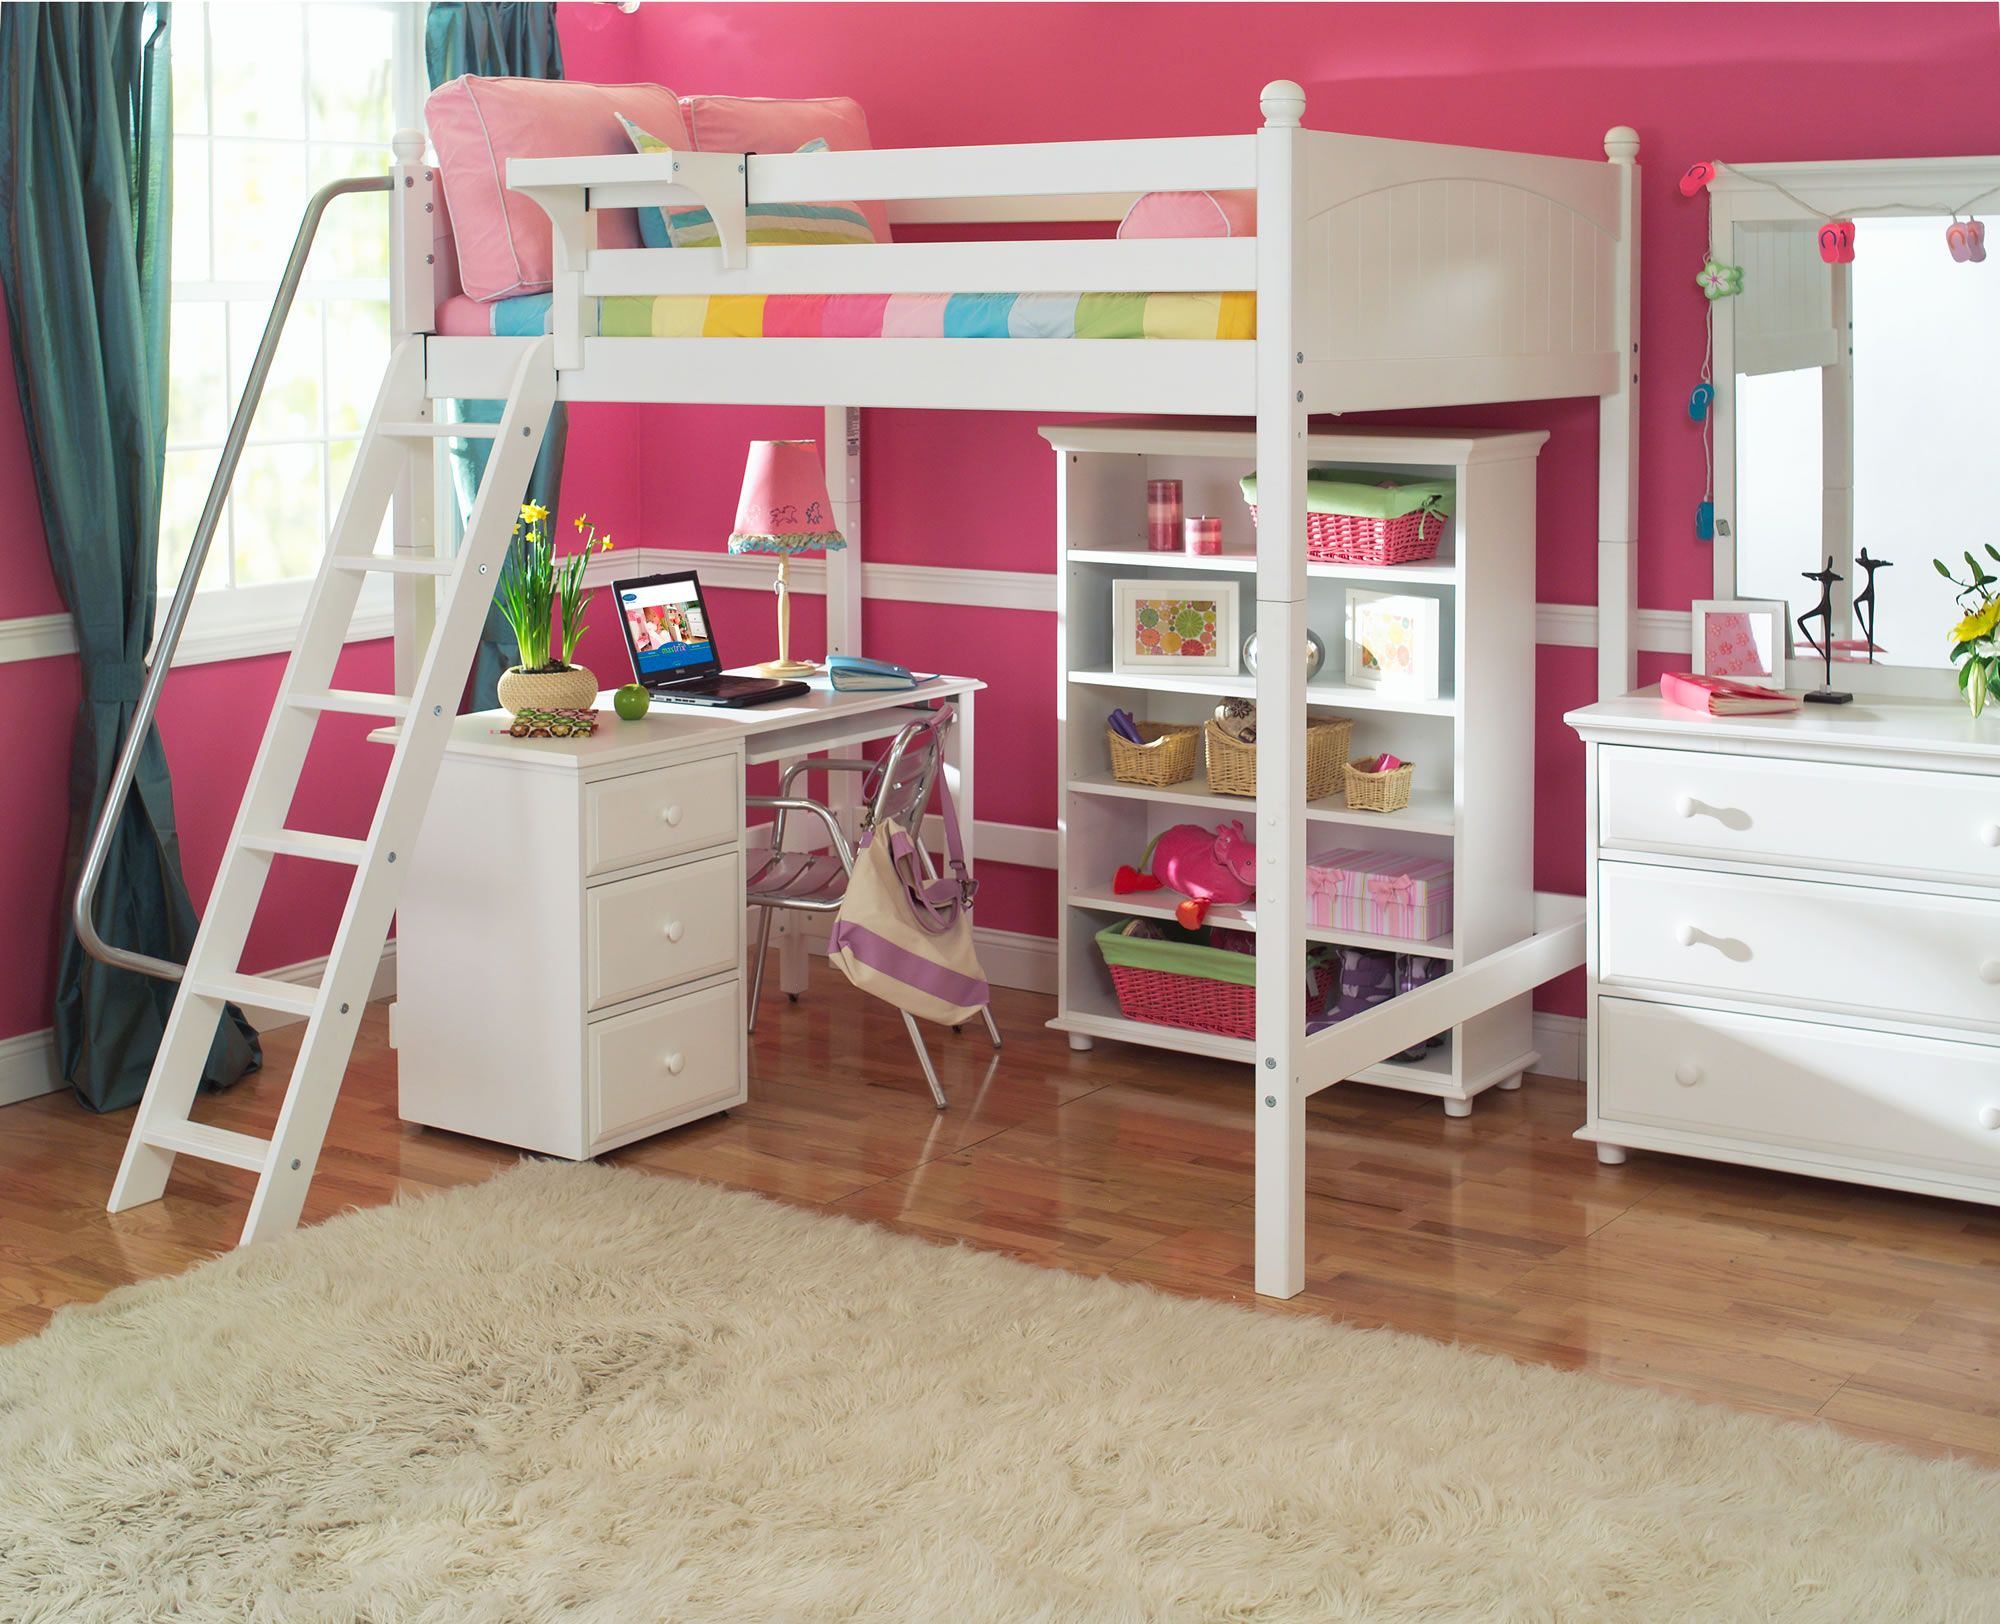 Bureau Adolescente Full Bunk Bed With Desk Under Bunk Beds Bunkbeds Pinterest